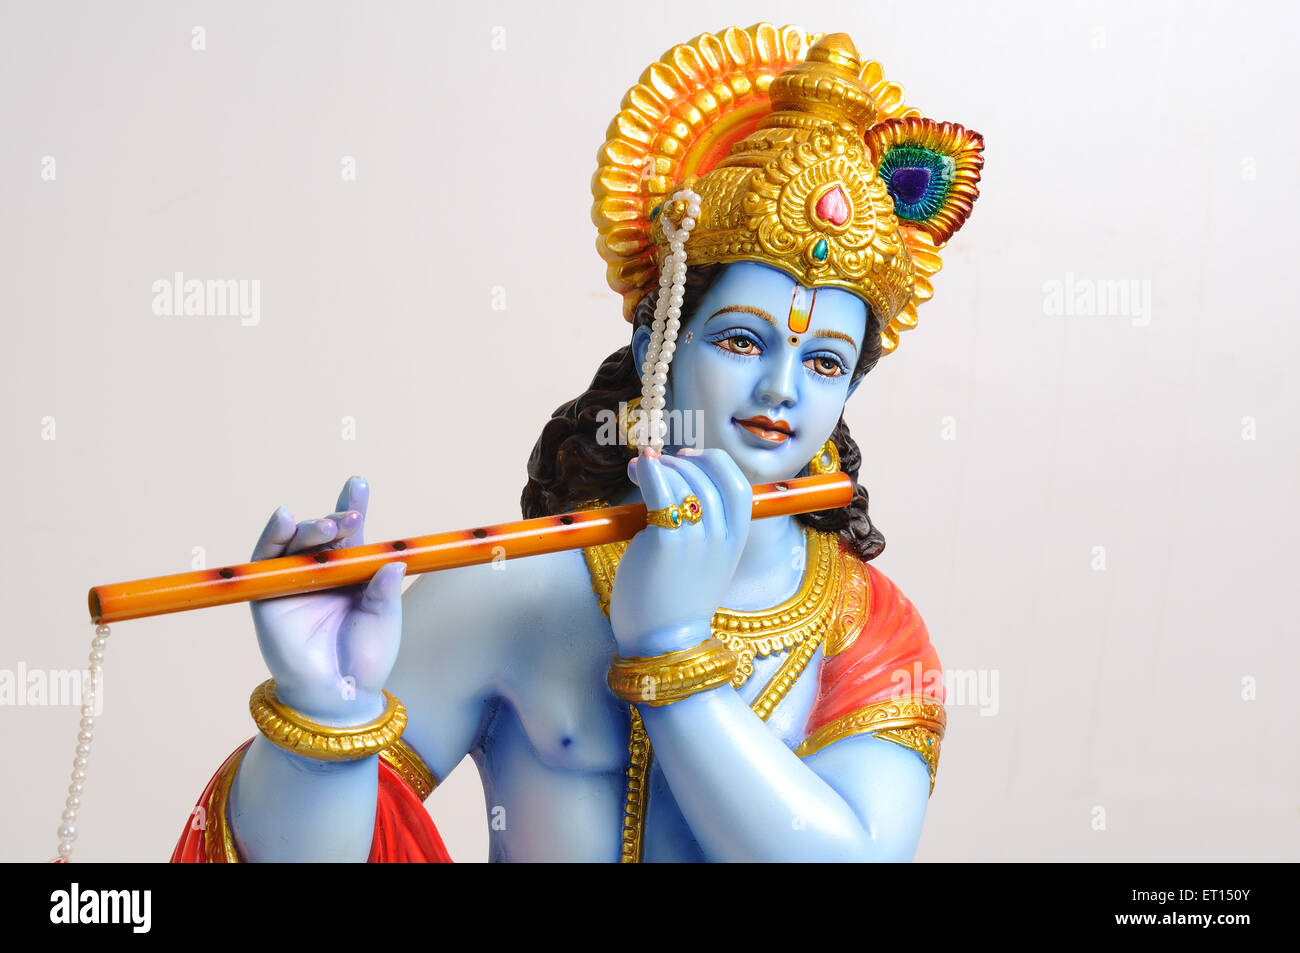 clay statue of god krishna playing flute ET150Y